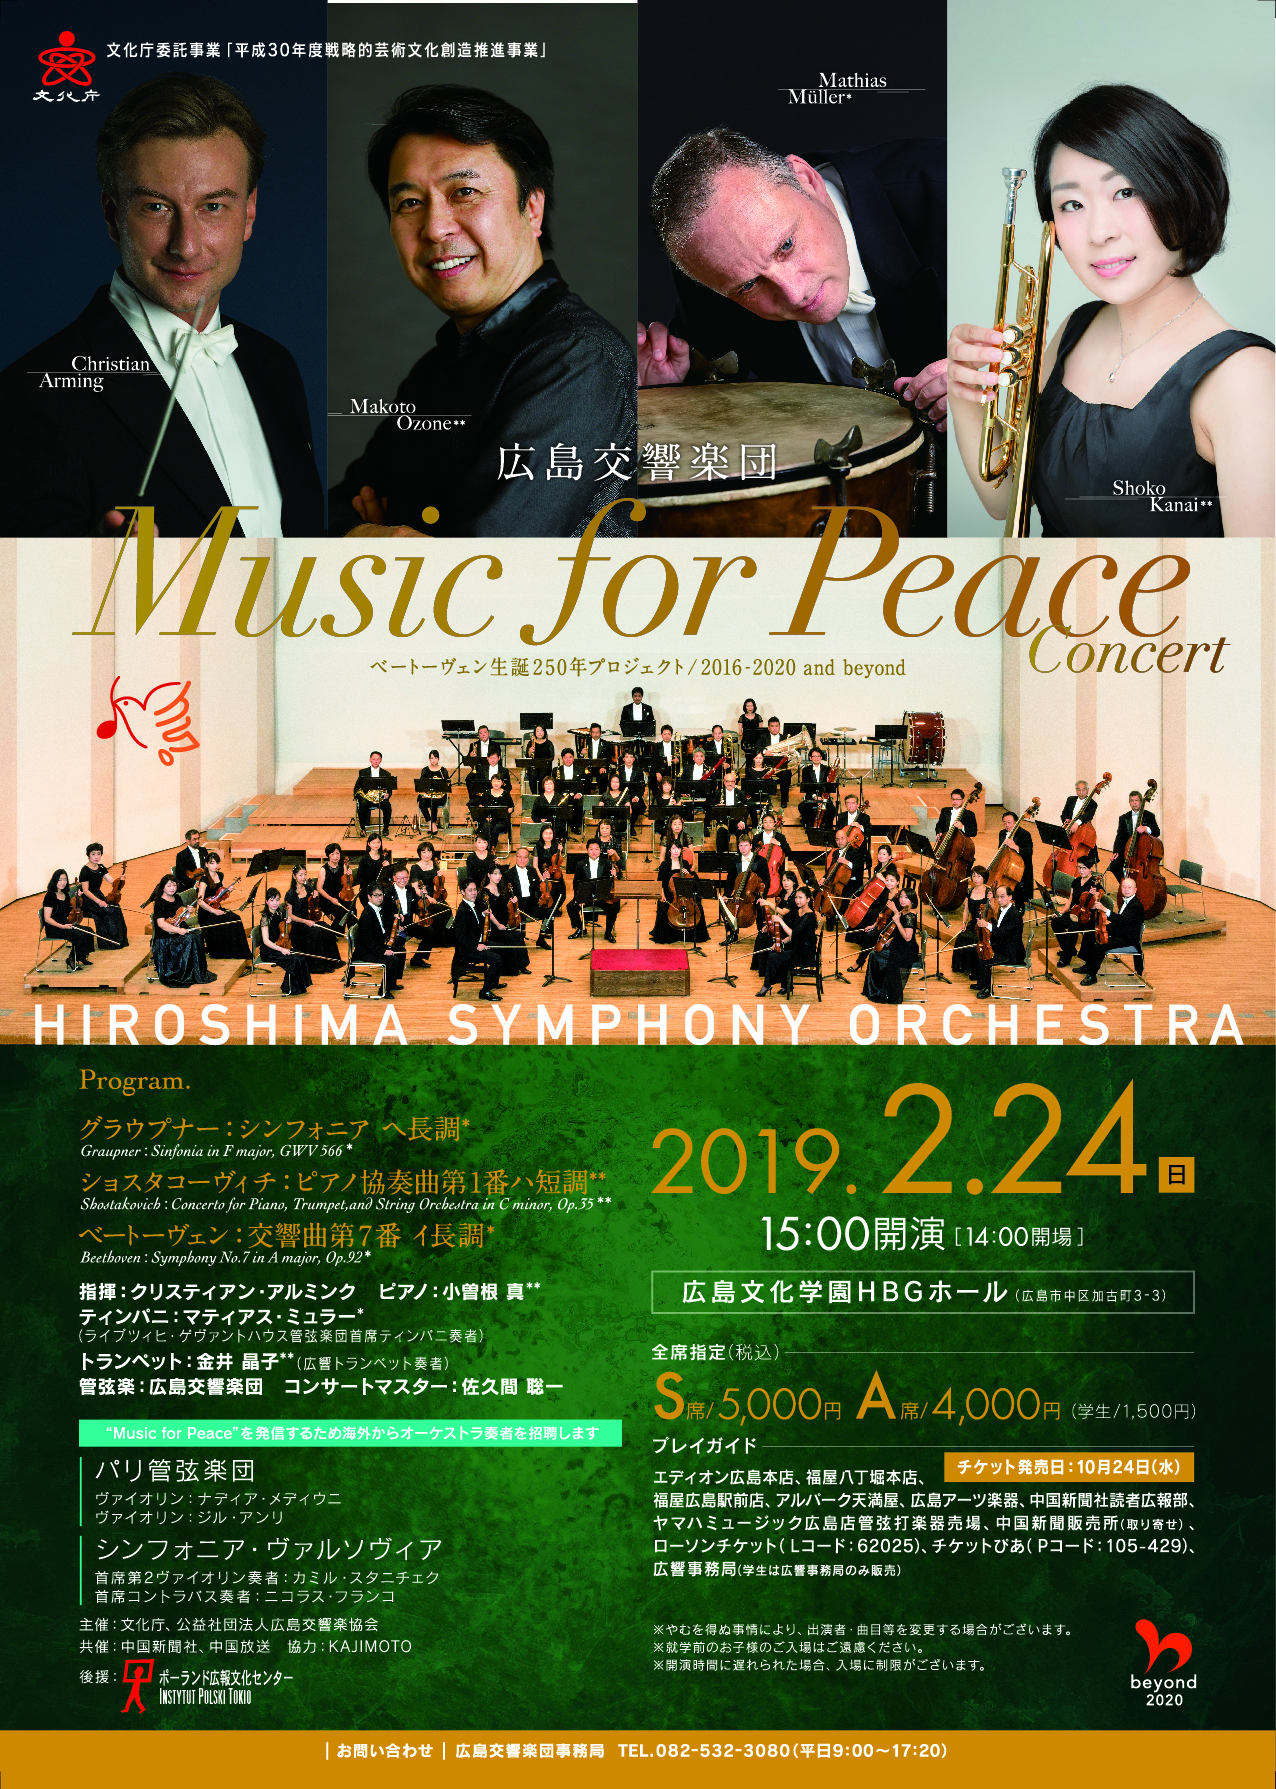 Music for Peace Concert